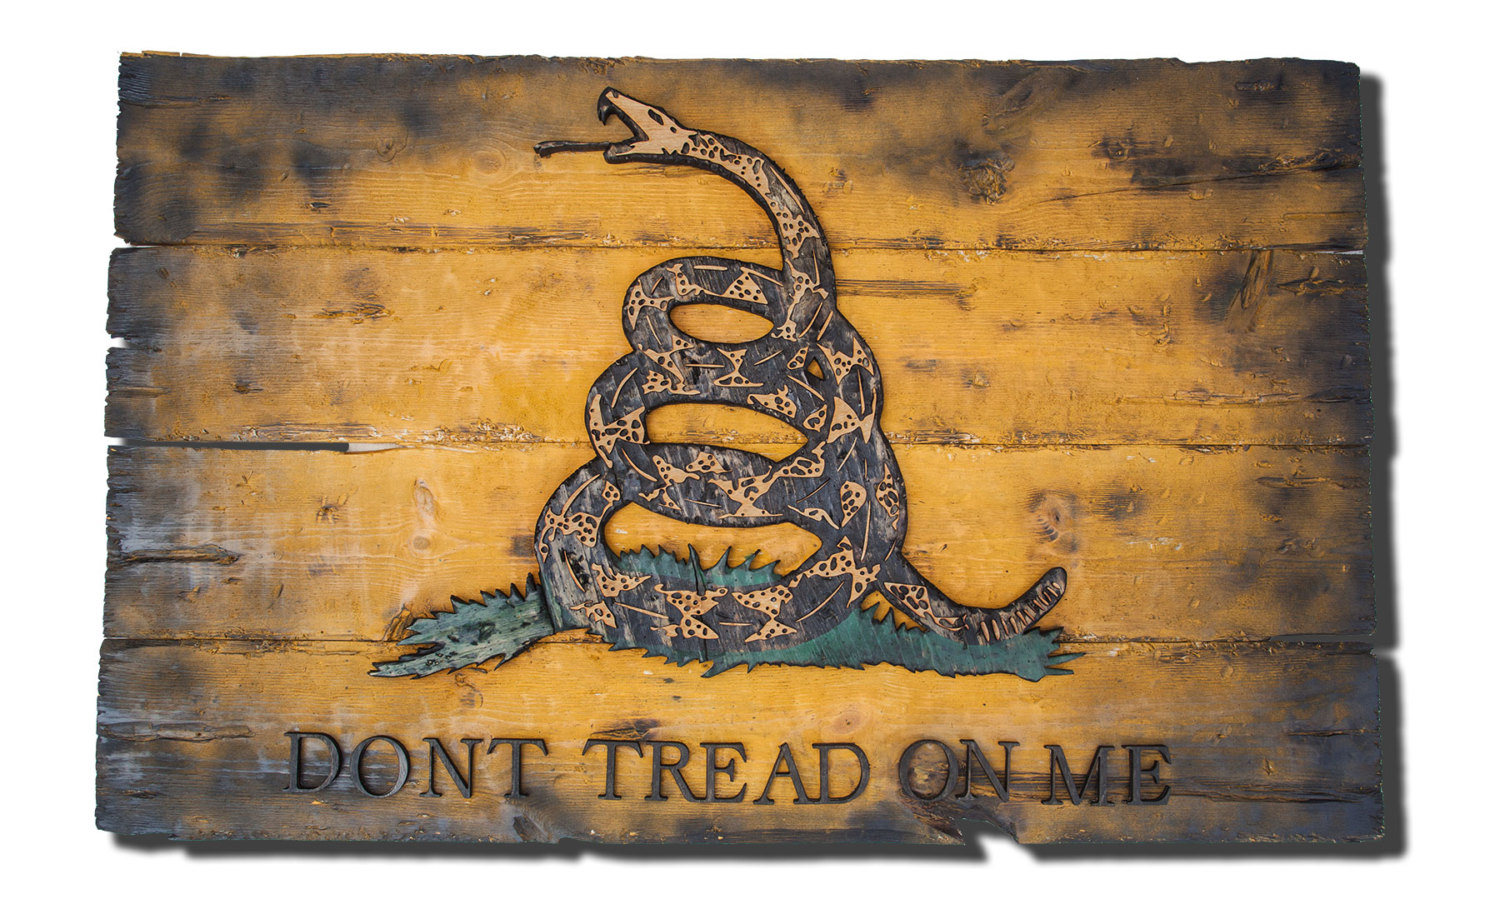 http://chrisknightcreations.com/wp-content/uploads/2017/09/gadsden-flag-dont-tread-on-me-limited-edition-weathered-wood-one-of-a-kind-vintage-art-distressed-weathered-recycled-snake-yellow-59b727051.jpg